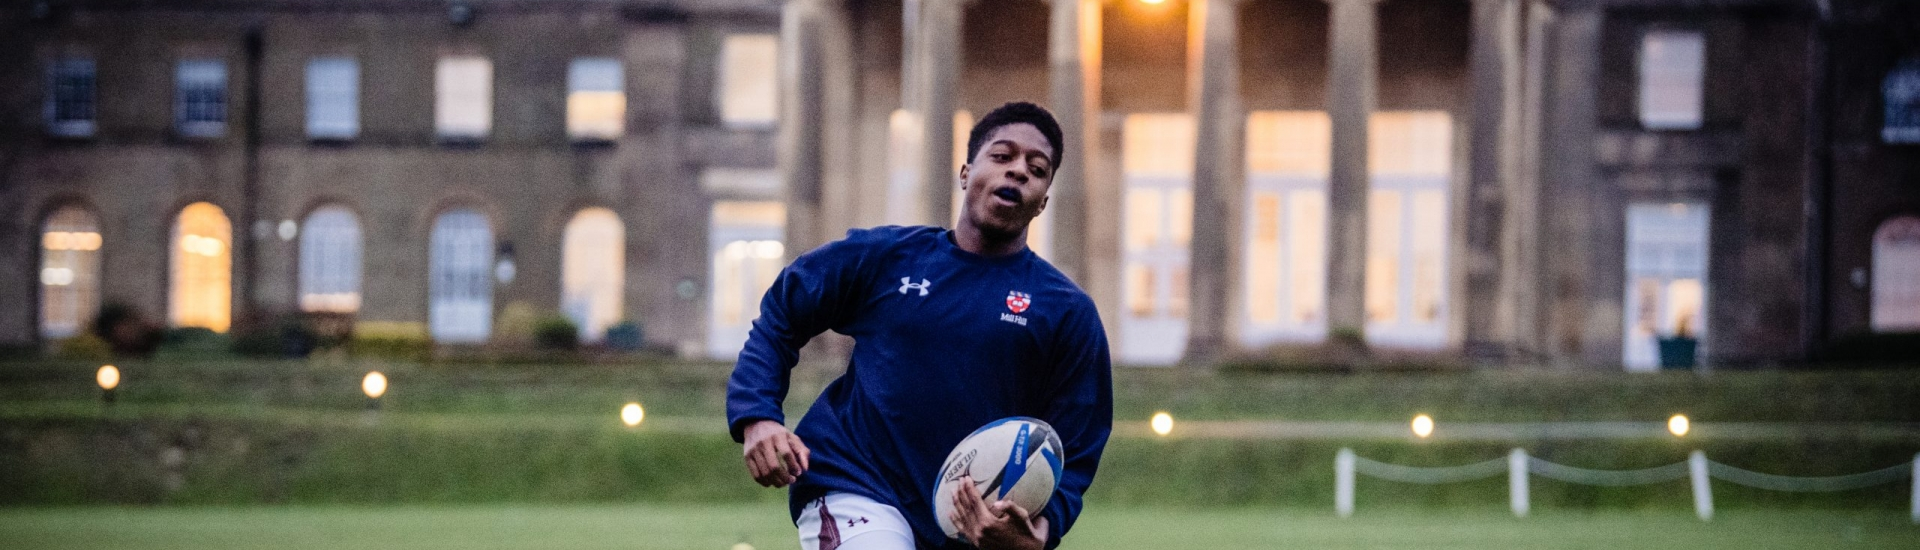 Student Playing Rugby